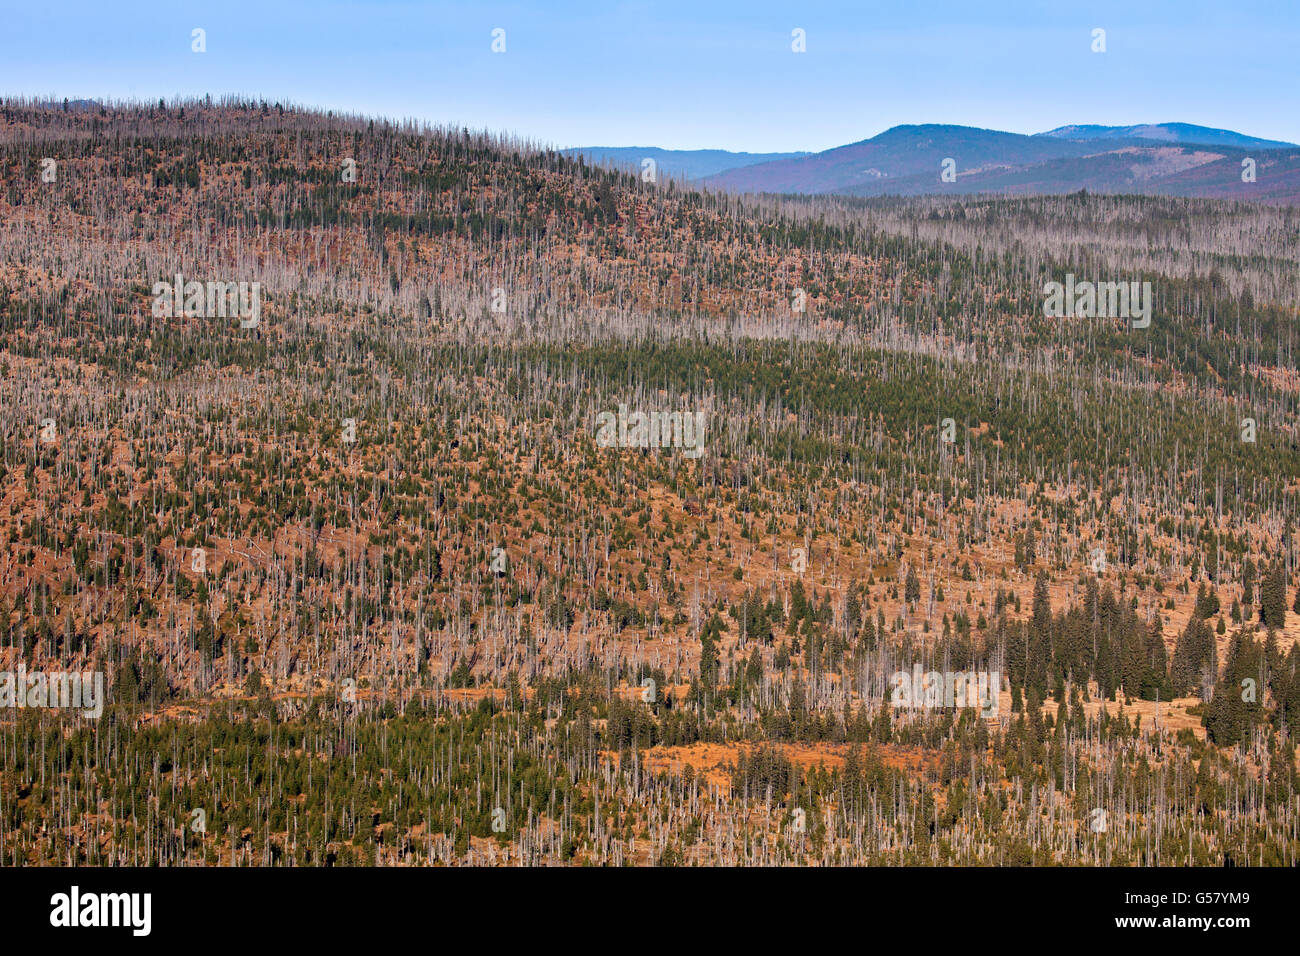 View from Mount Lusen over woodland with dead trees in the Bavarian Forest National Park, Bavaria, Germany - Stock Image